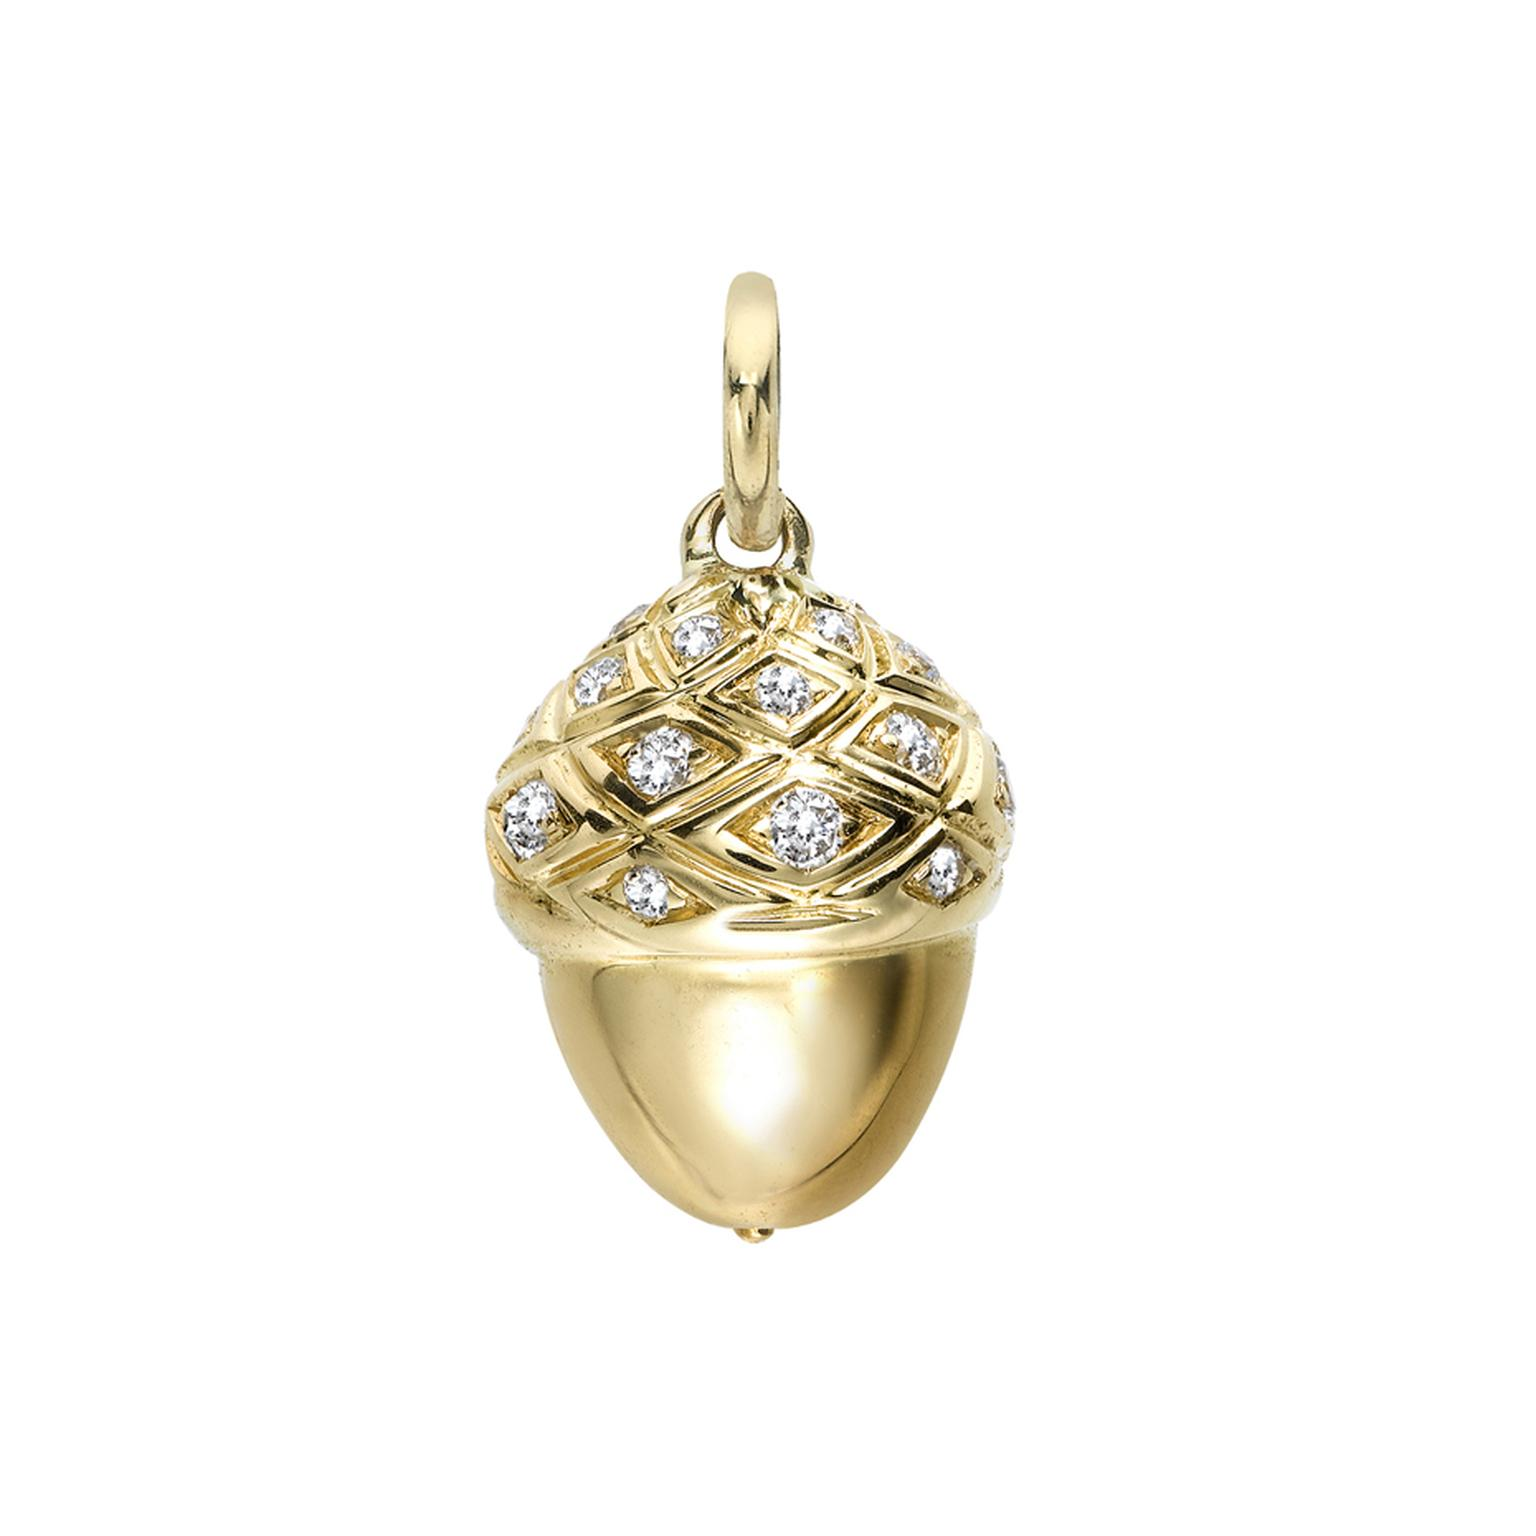 Asprey gold Acorn charm with diamonds (£2,900) from the Woodland jewellery collection, created in collaboration with Shaun Leane.